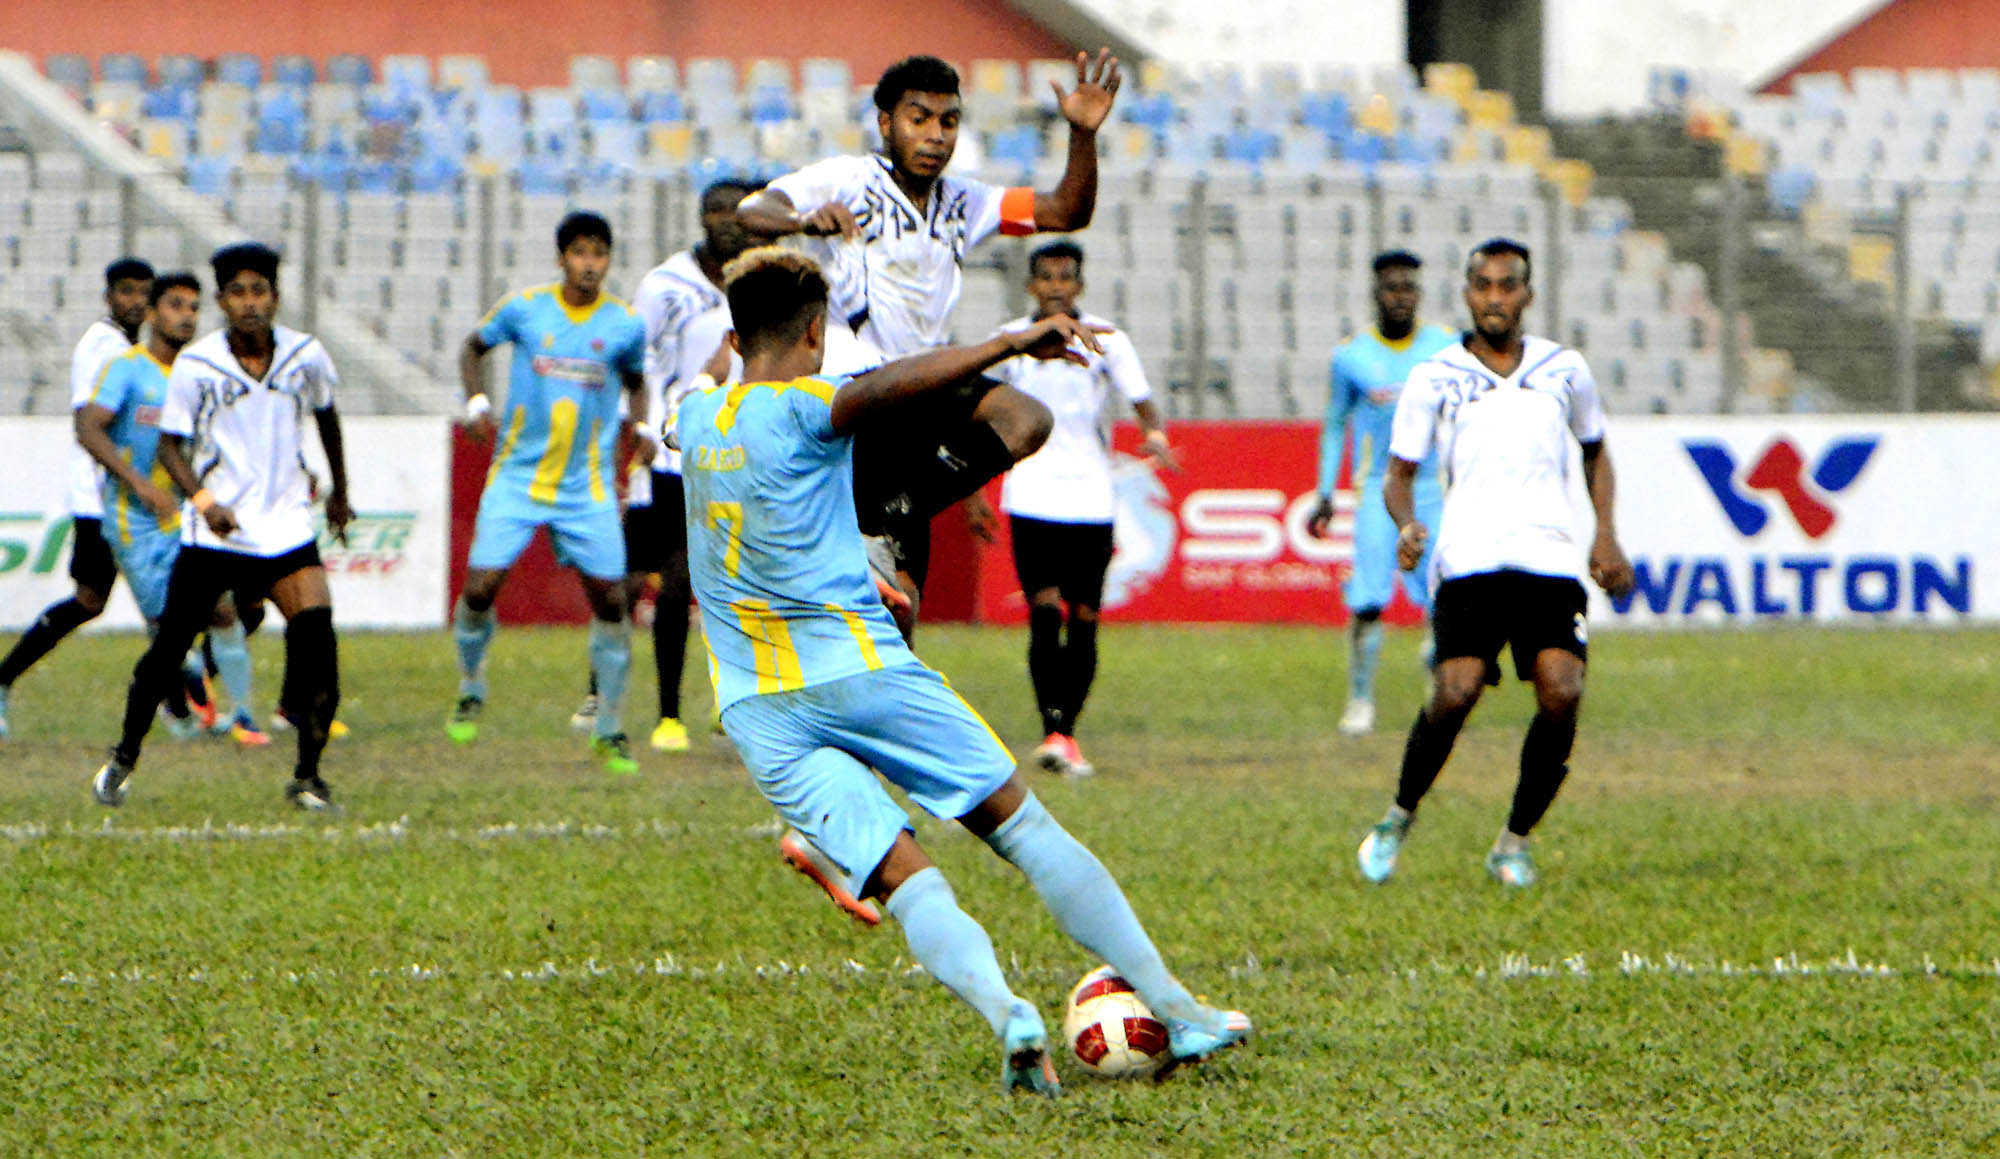 An exciting moment of the match of the Saif Power Battery Bangladesh Premier League Football between Chittagong Abahani Limited and Arambagh Krira Sangha at the Bangabandhu National Stadium on Thursday. Chittagong Abahani won the match 1-0.